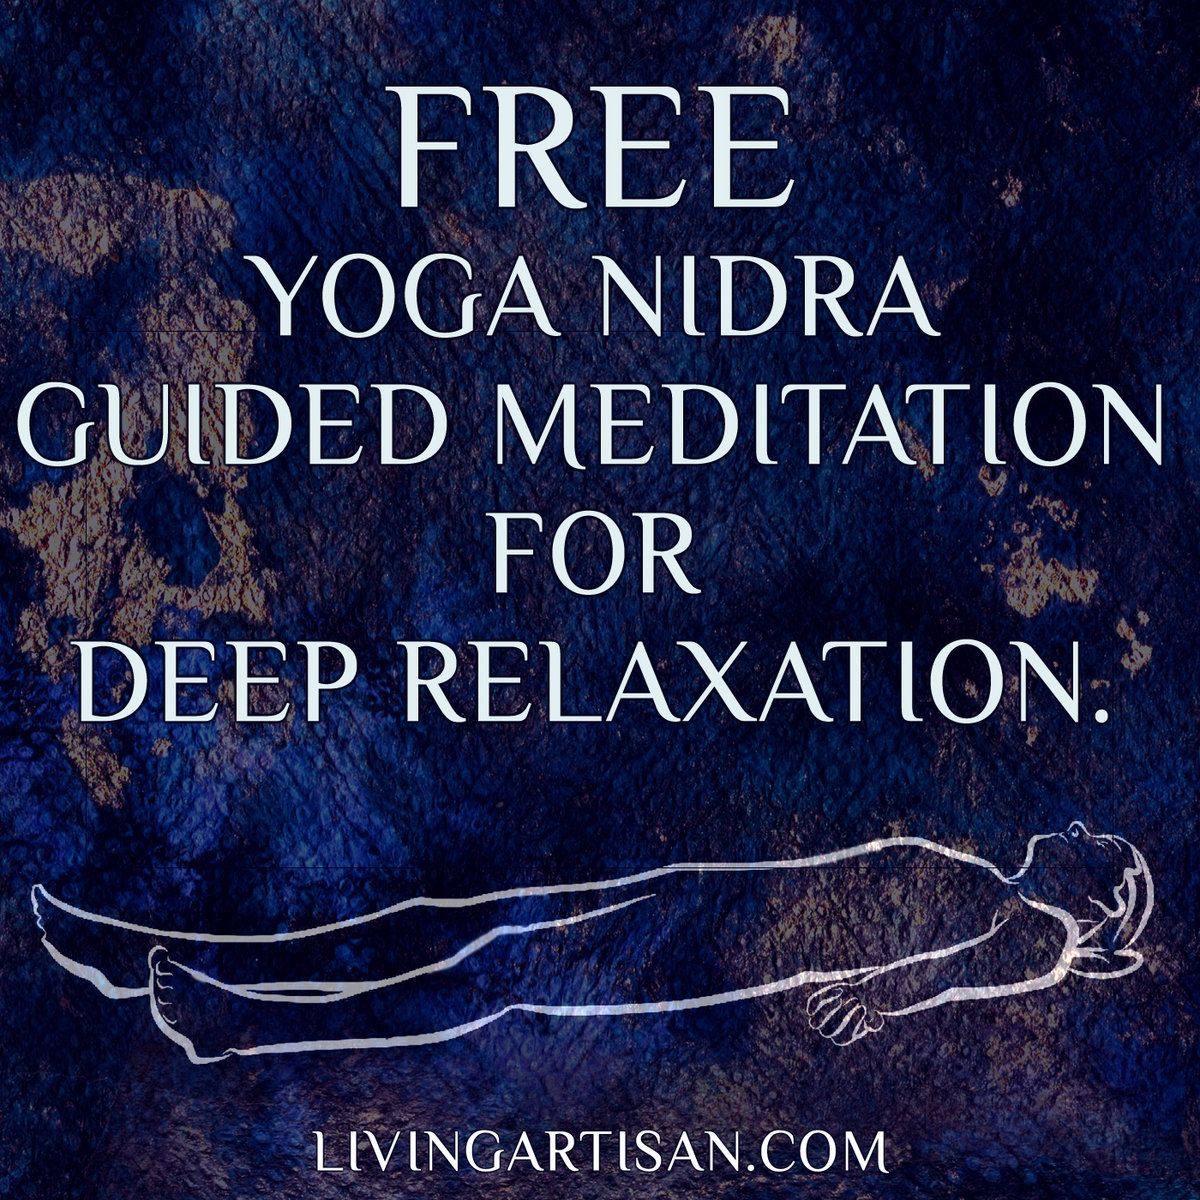 Free Yoga Nidra Guided Meditation With Music Living Artisan